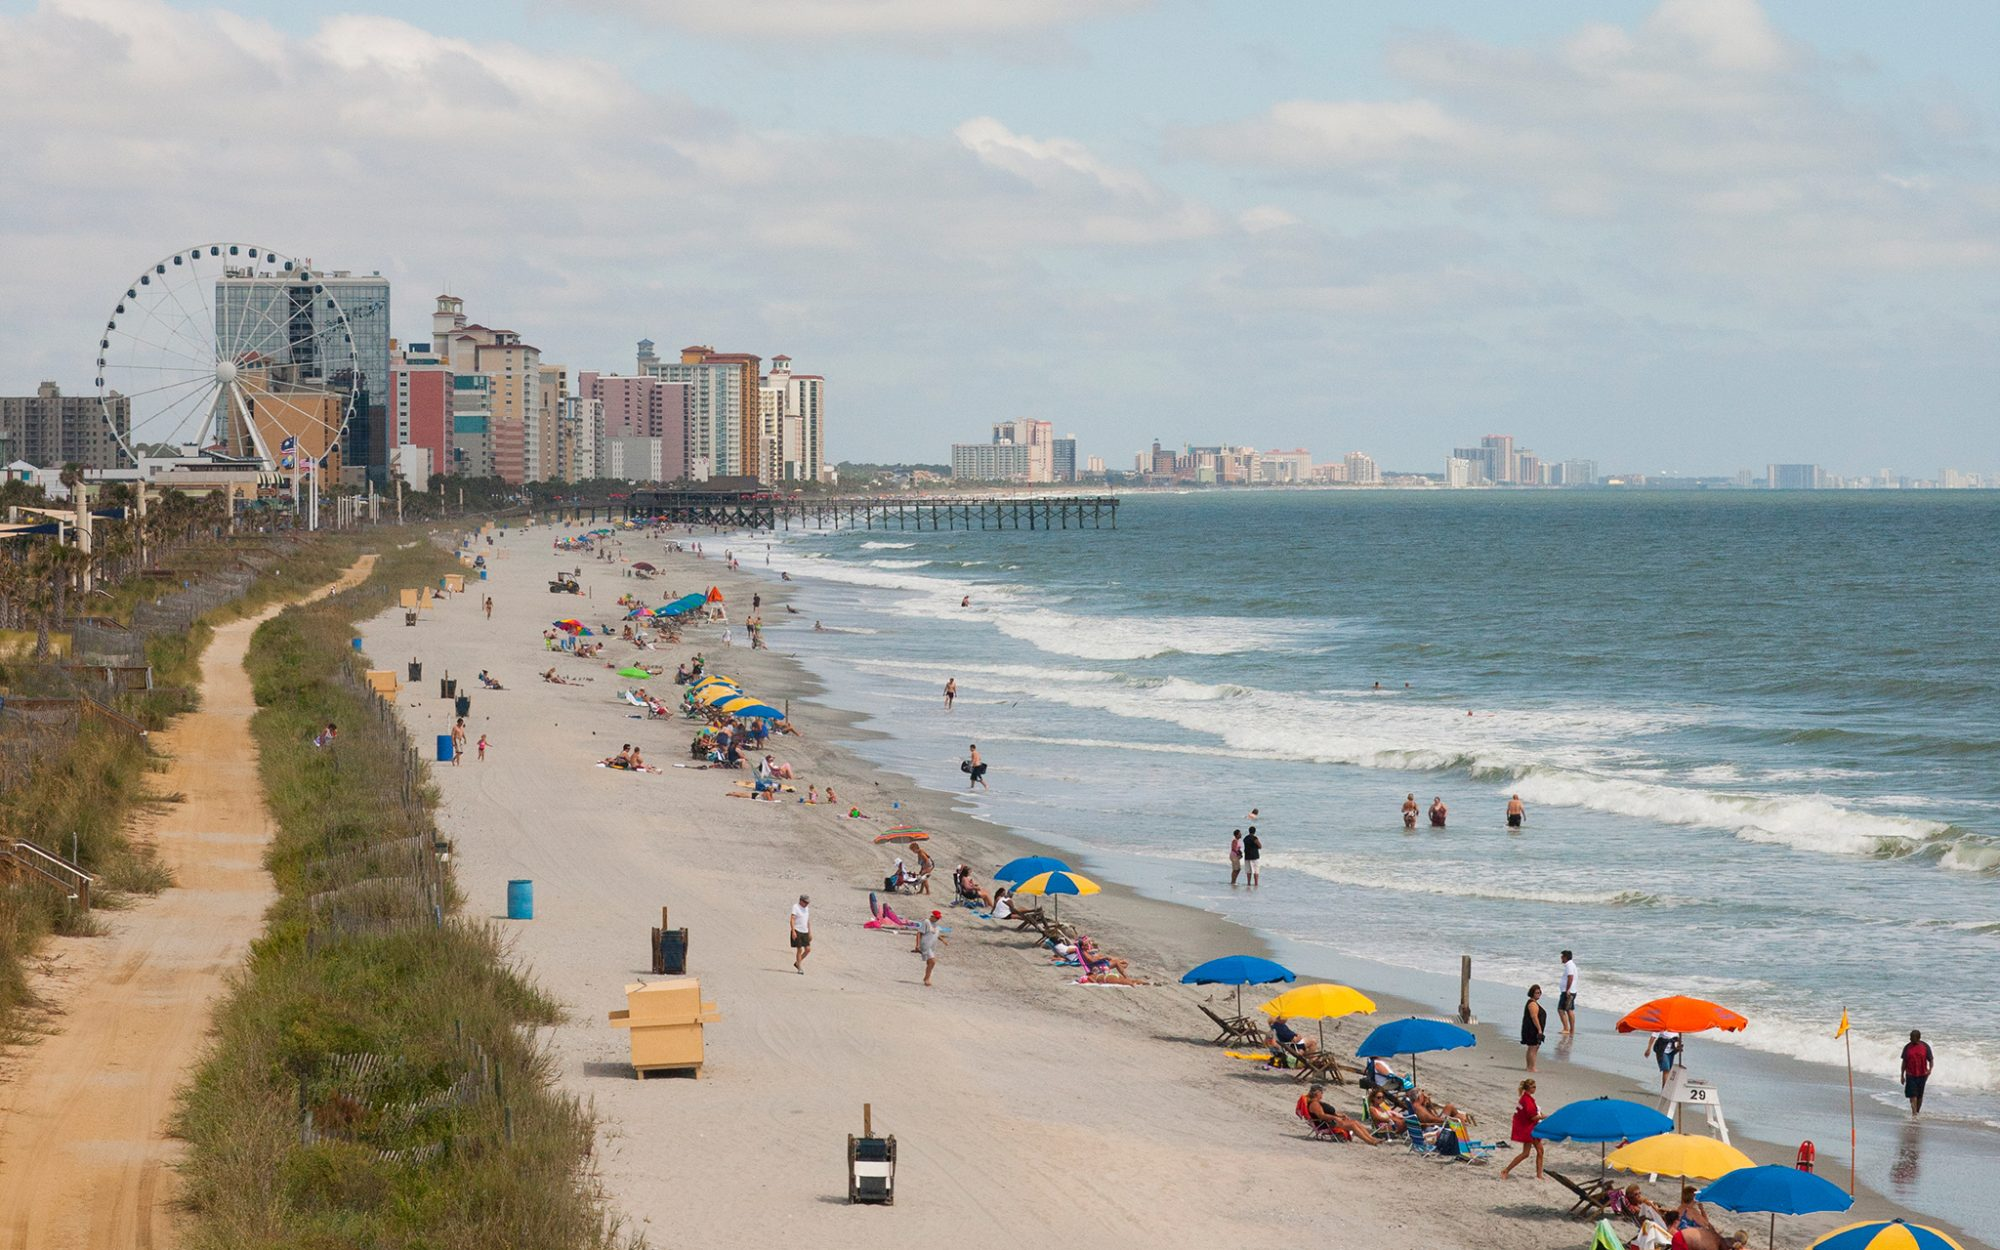 America's Best Towns for July 4th: Myrtle Beach